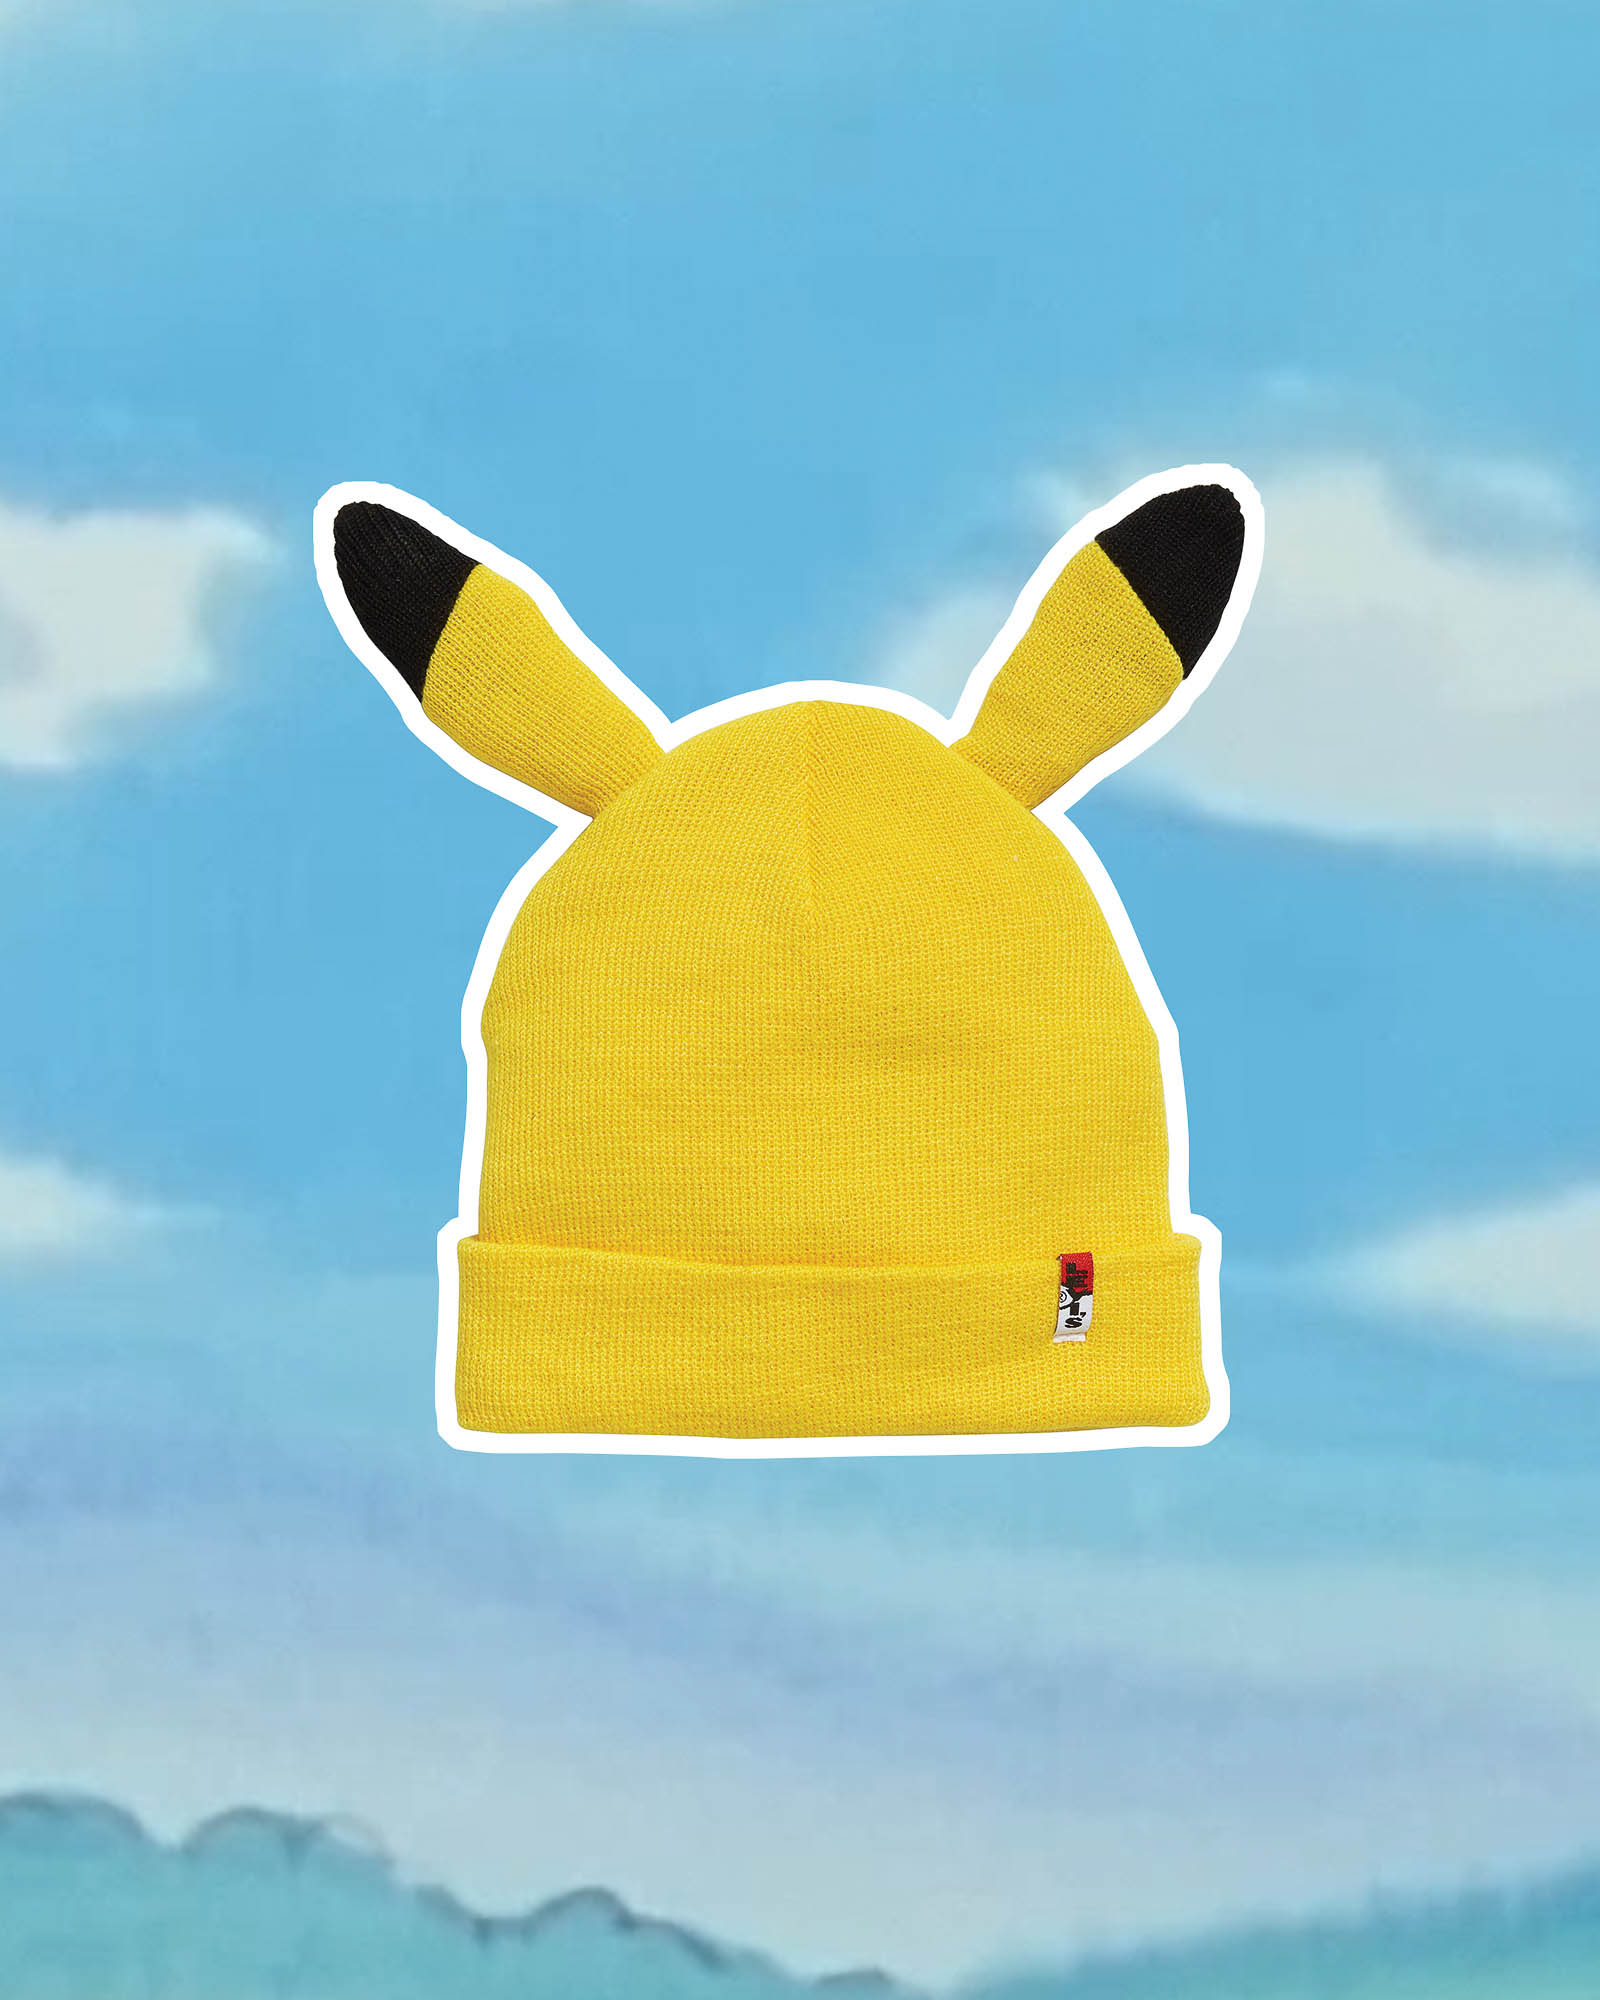 21_H1_Pokemon_Group_404_Accessories_05_CMYK